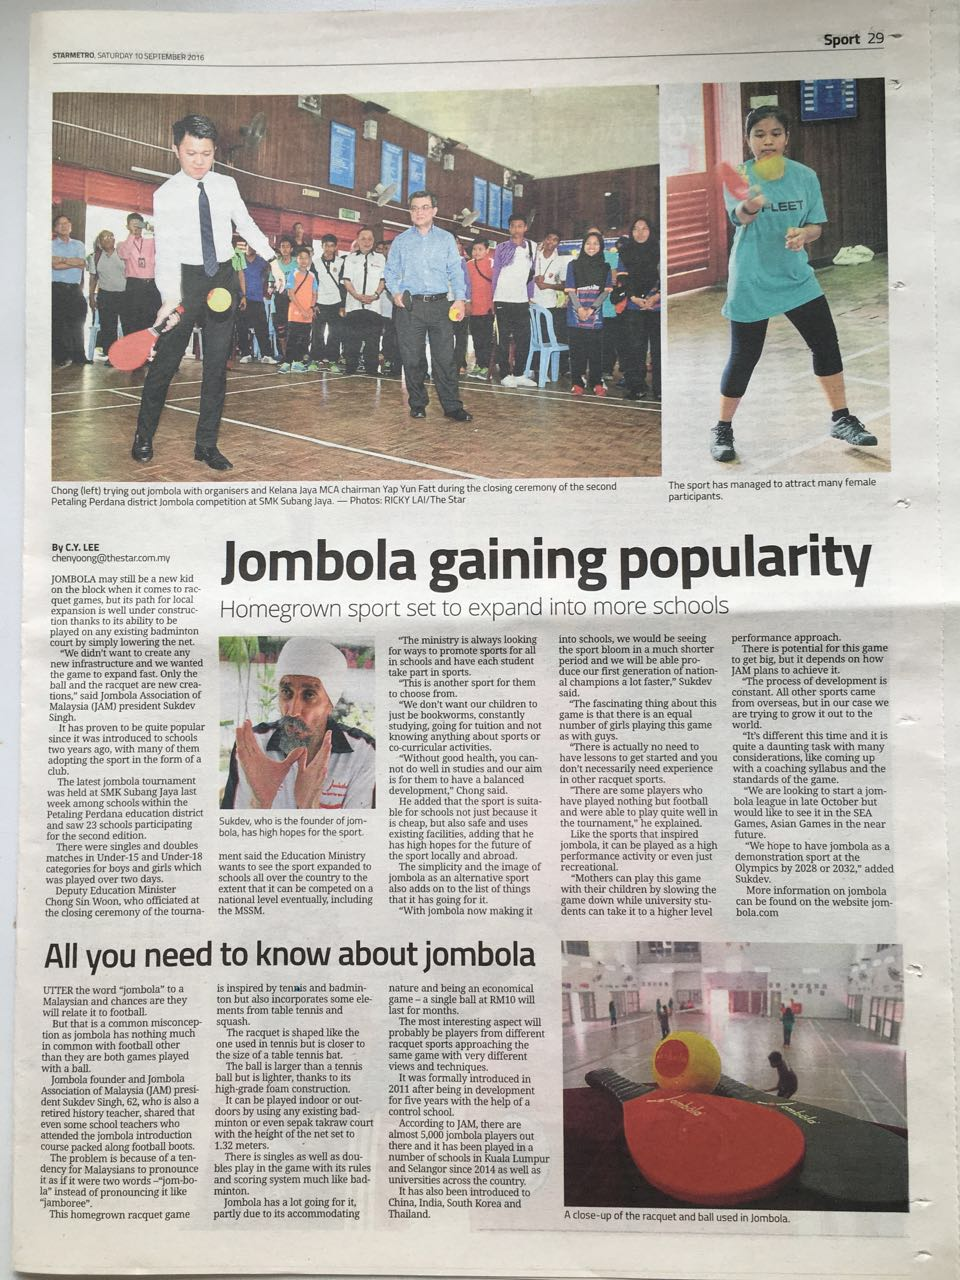 2016-09-10-jombola-star-metro-home-grown-sport-gaining-popularity